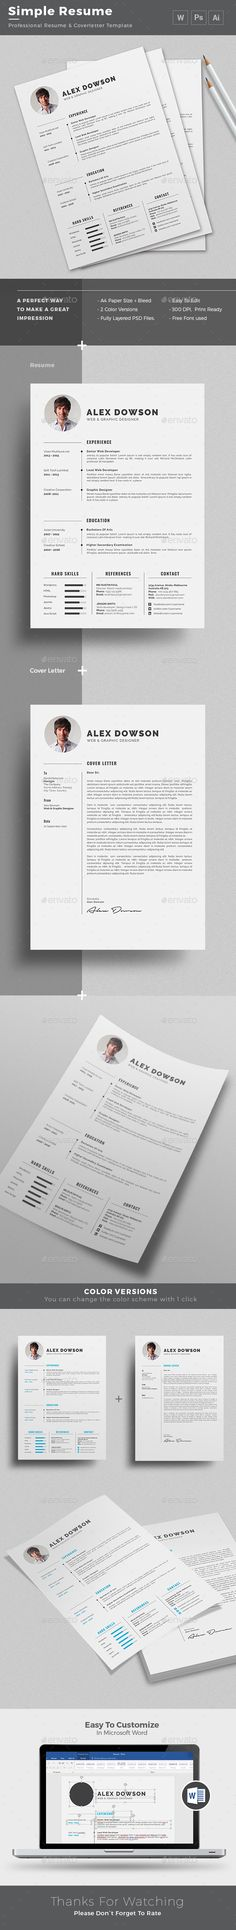 Resume Word Resume words, Cv template and Modern resume - resume download in word